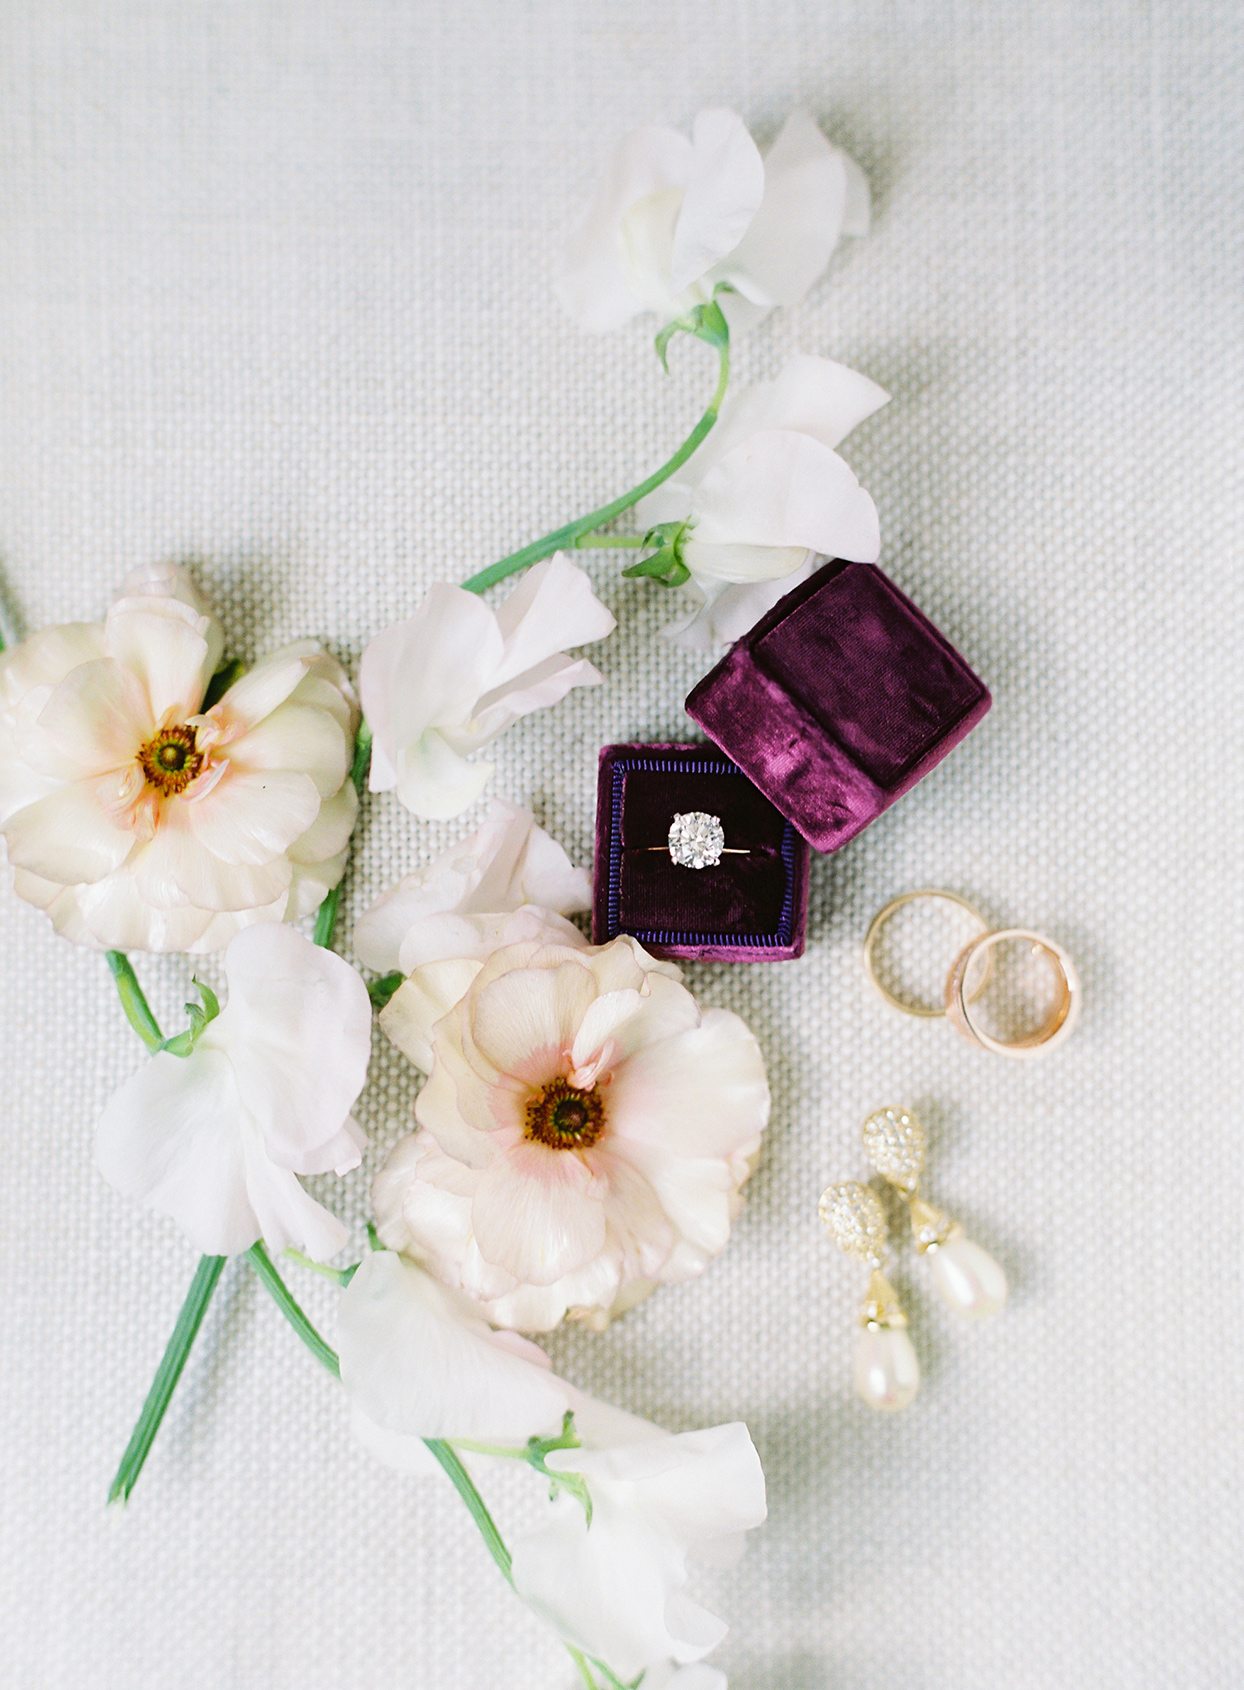 paula terence wedding ring in purple box with flowers